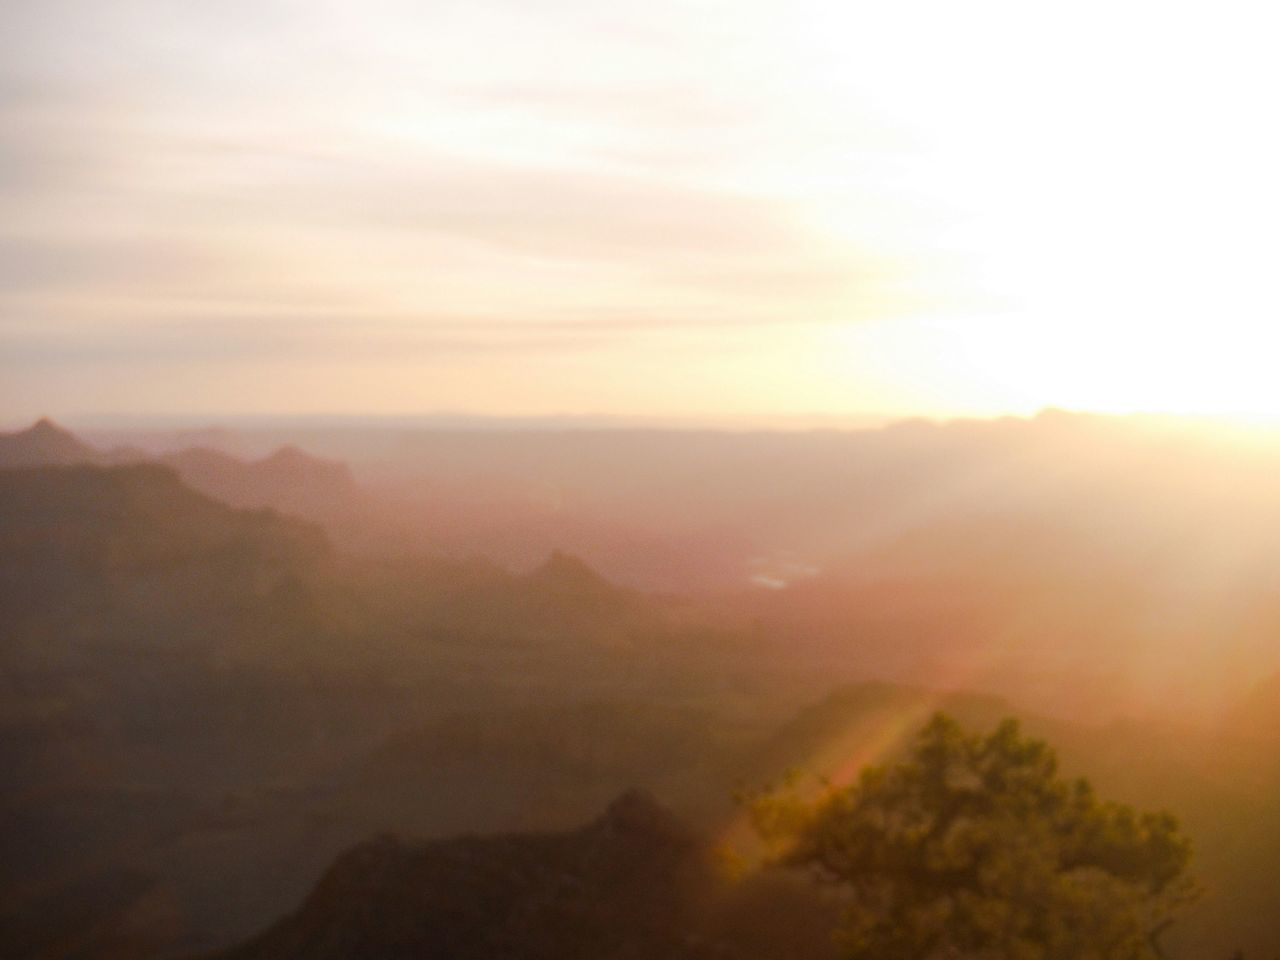 The first moment of sunrise 🌞 Grand Canyon Arizona First Light New Day Softness Sunrise Canyon Soft Colors  Morning Light Grandcanyon Rising Sun Grand Canyon National Park Grand Canyon, South Rim Sunrise_Collection Soft Light Quiet Morning Peaceful Sunrise Brand New Day Canyons Quiet Moments Dawn Of A New Day Daybreak Day Breaks Softly Morning Sun Hazy Days